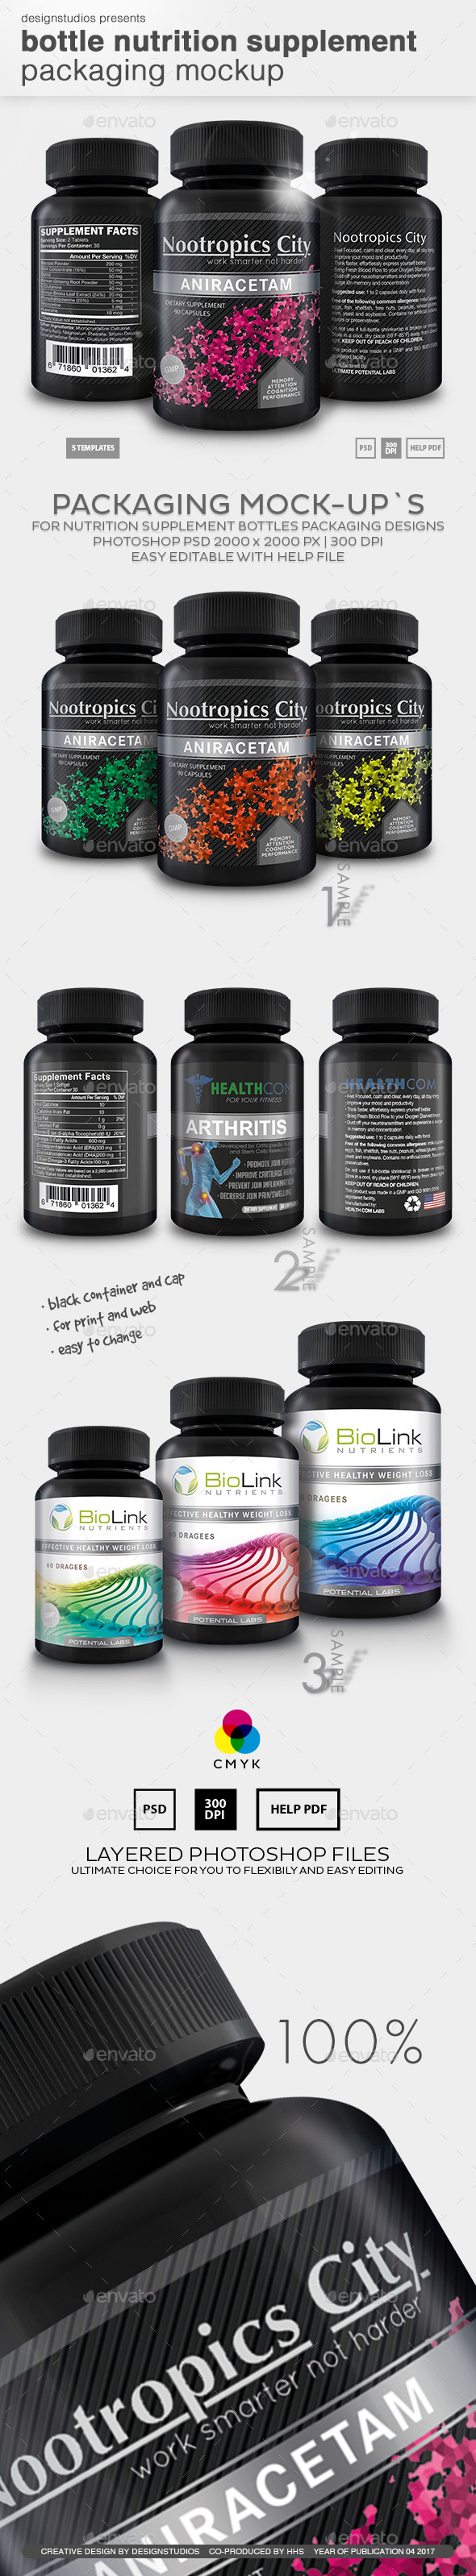 Bottle Nutrition Supplement Packaging Mock-Up - Food and Drink Packaging